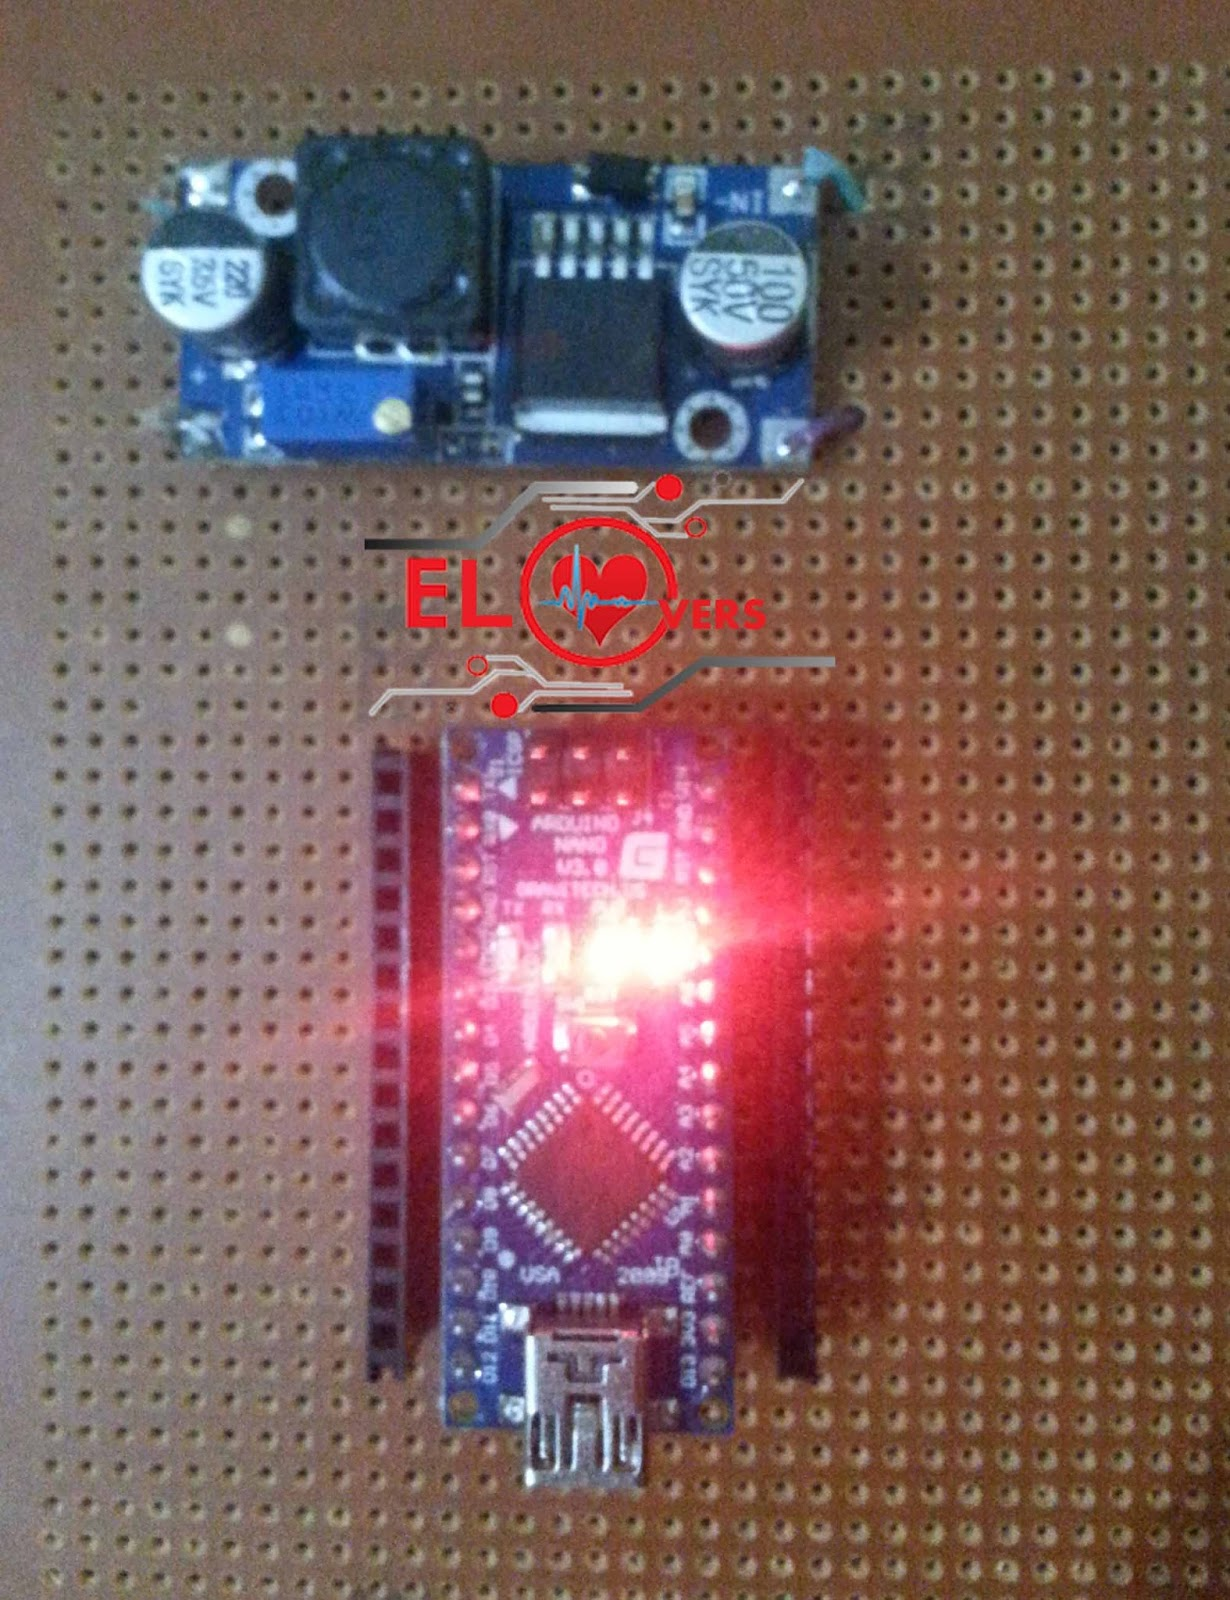 How To Turn On Arduino Using Buck Converter Electronics Lovers Make Printed Circuit Board Pcbgogo